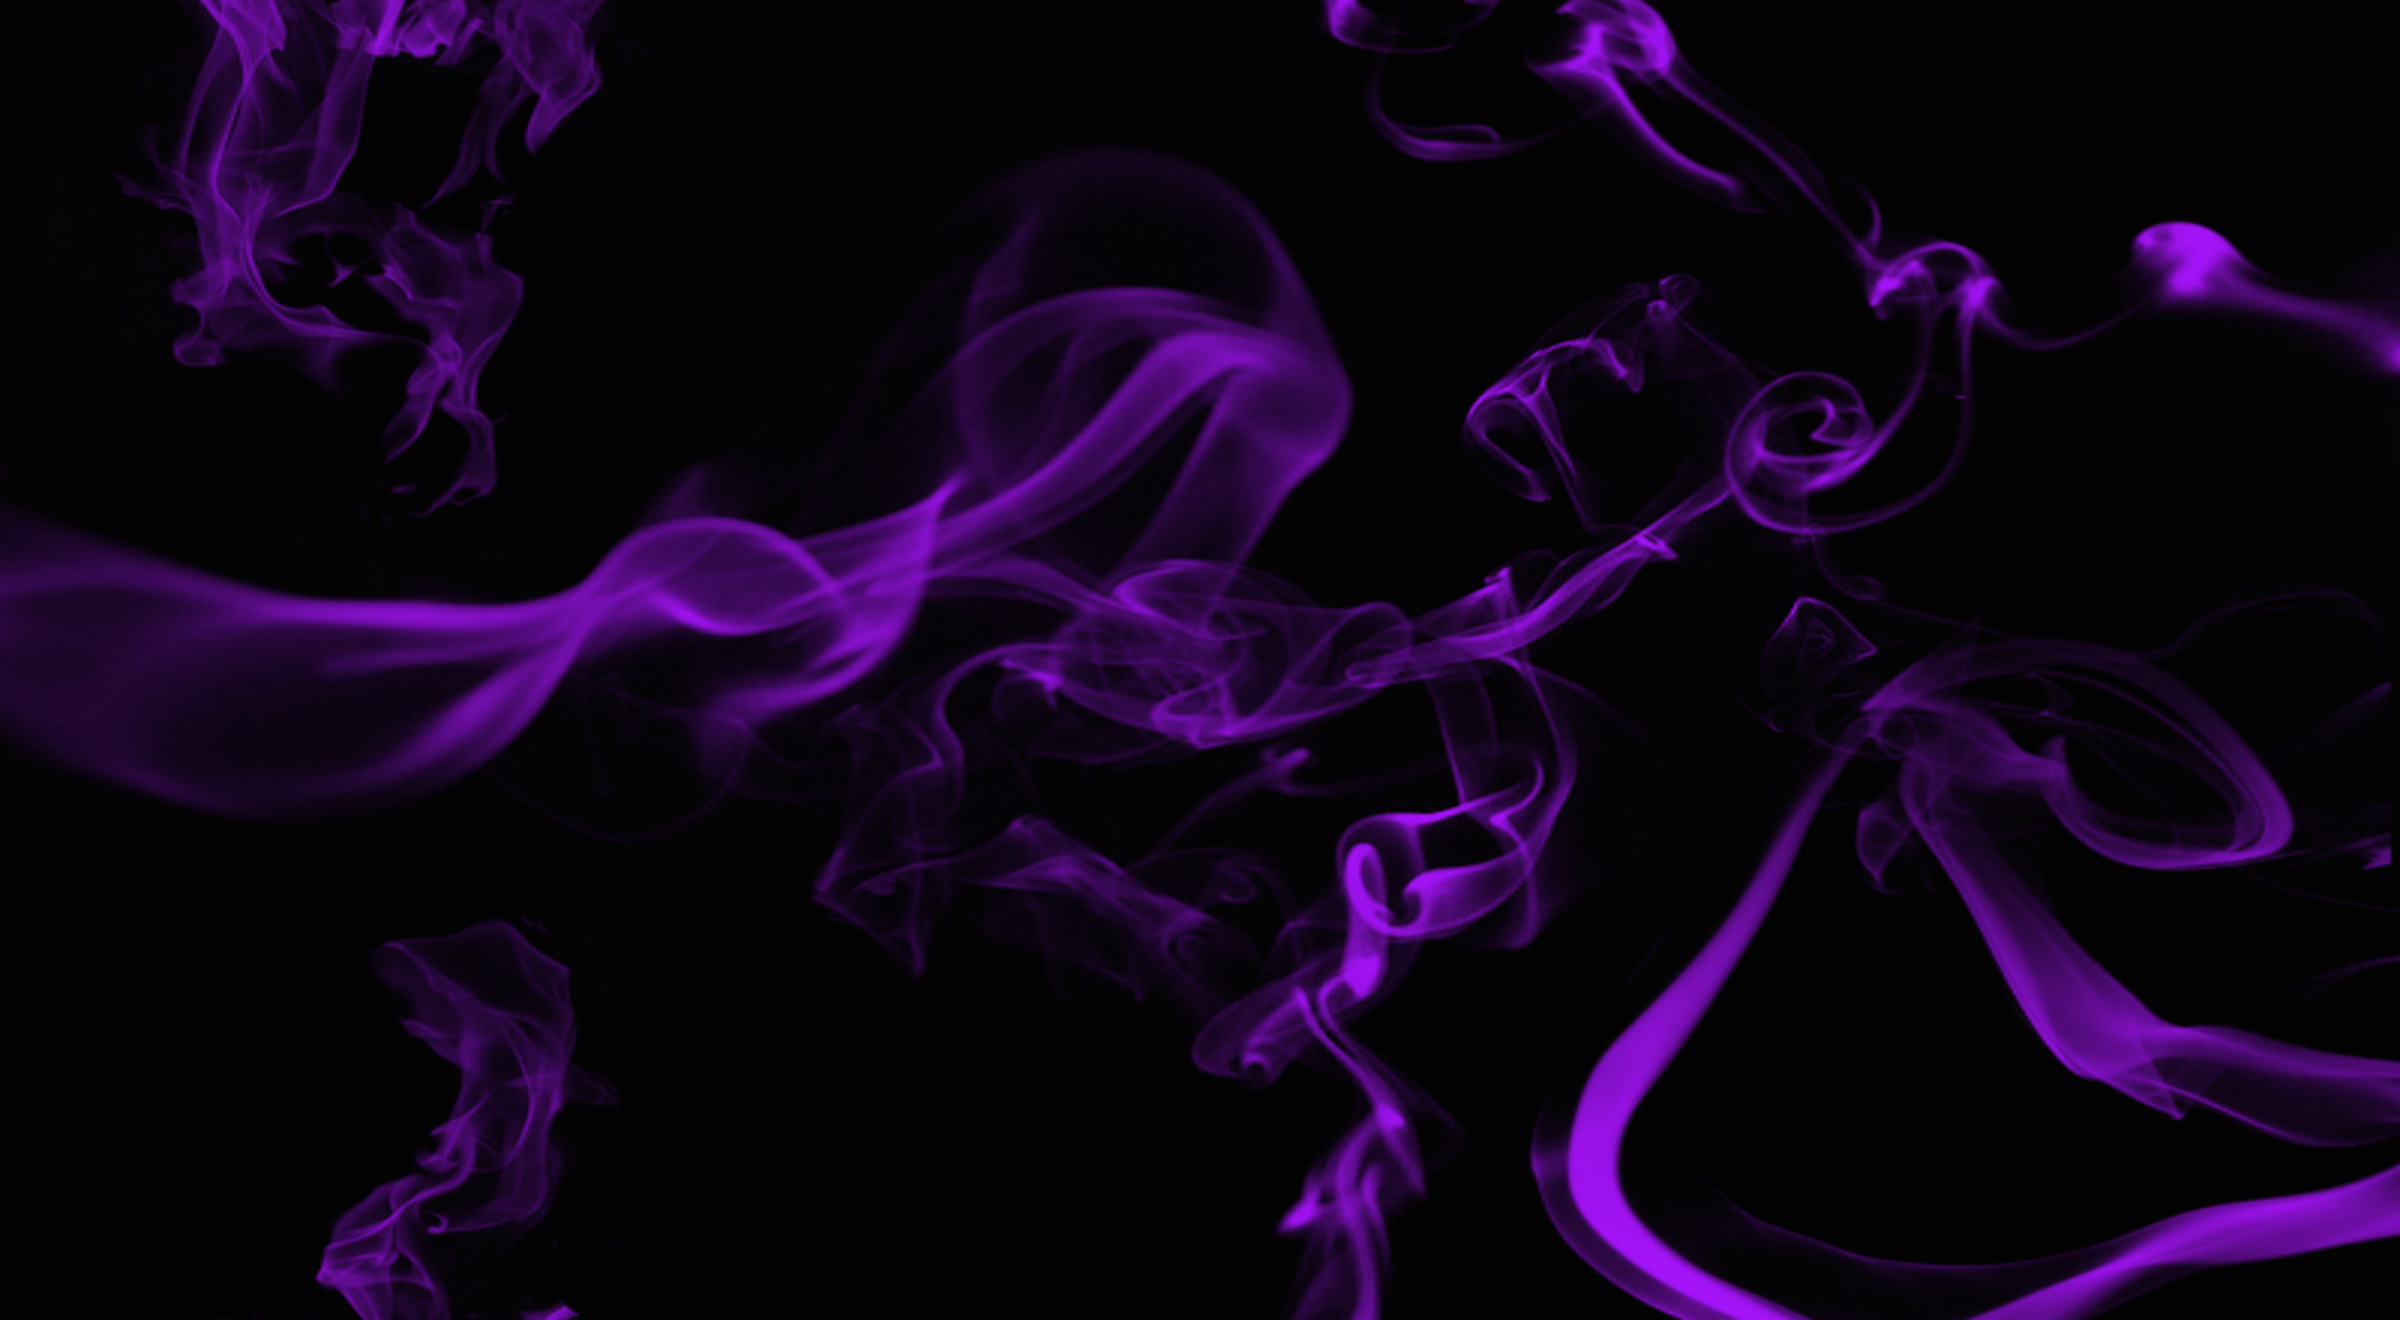 49 smoke hd wallpapers backgrounds wallpaper abyss page 2 - Dark smoking wallpapers ...